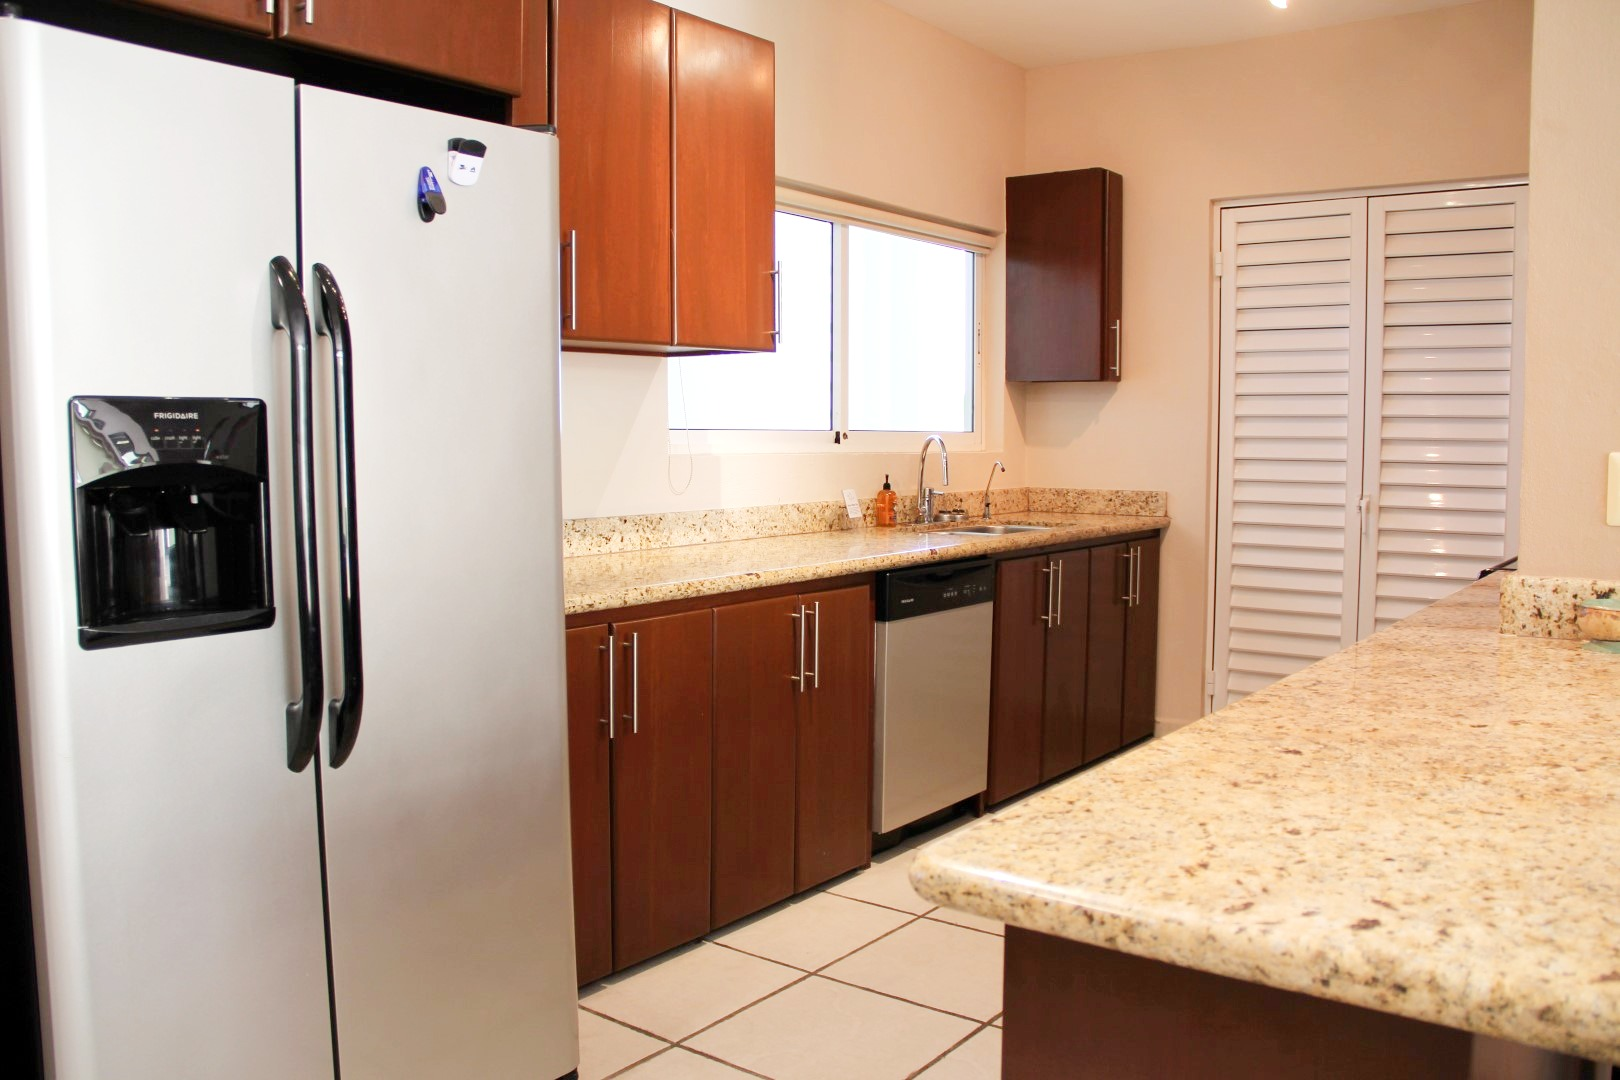 Fully equipped and modern kitchen.